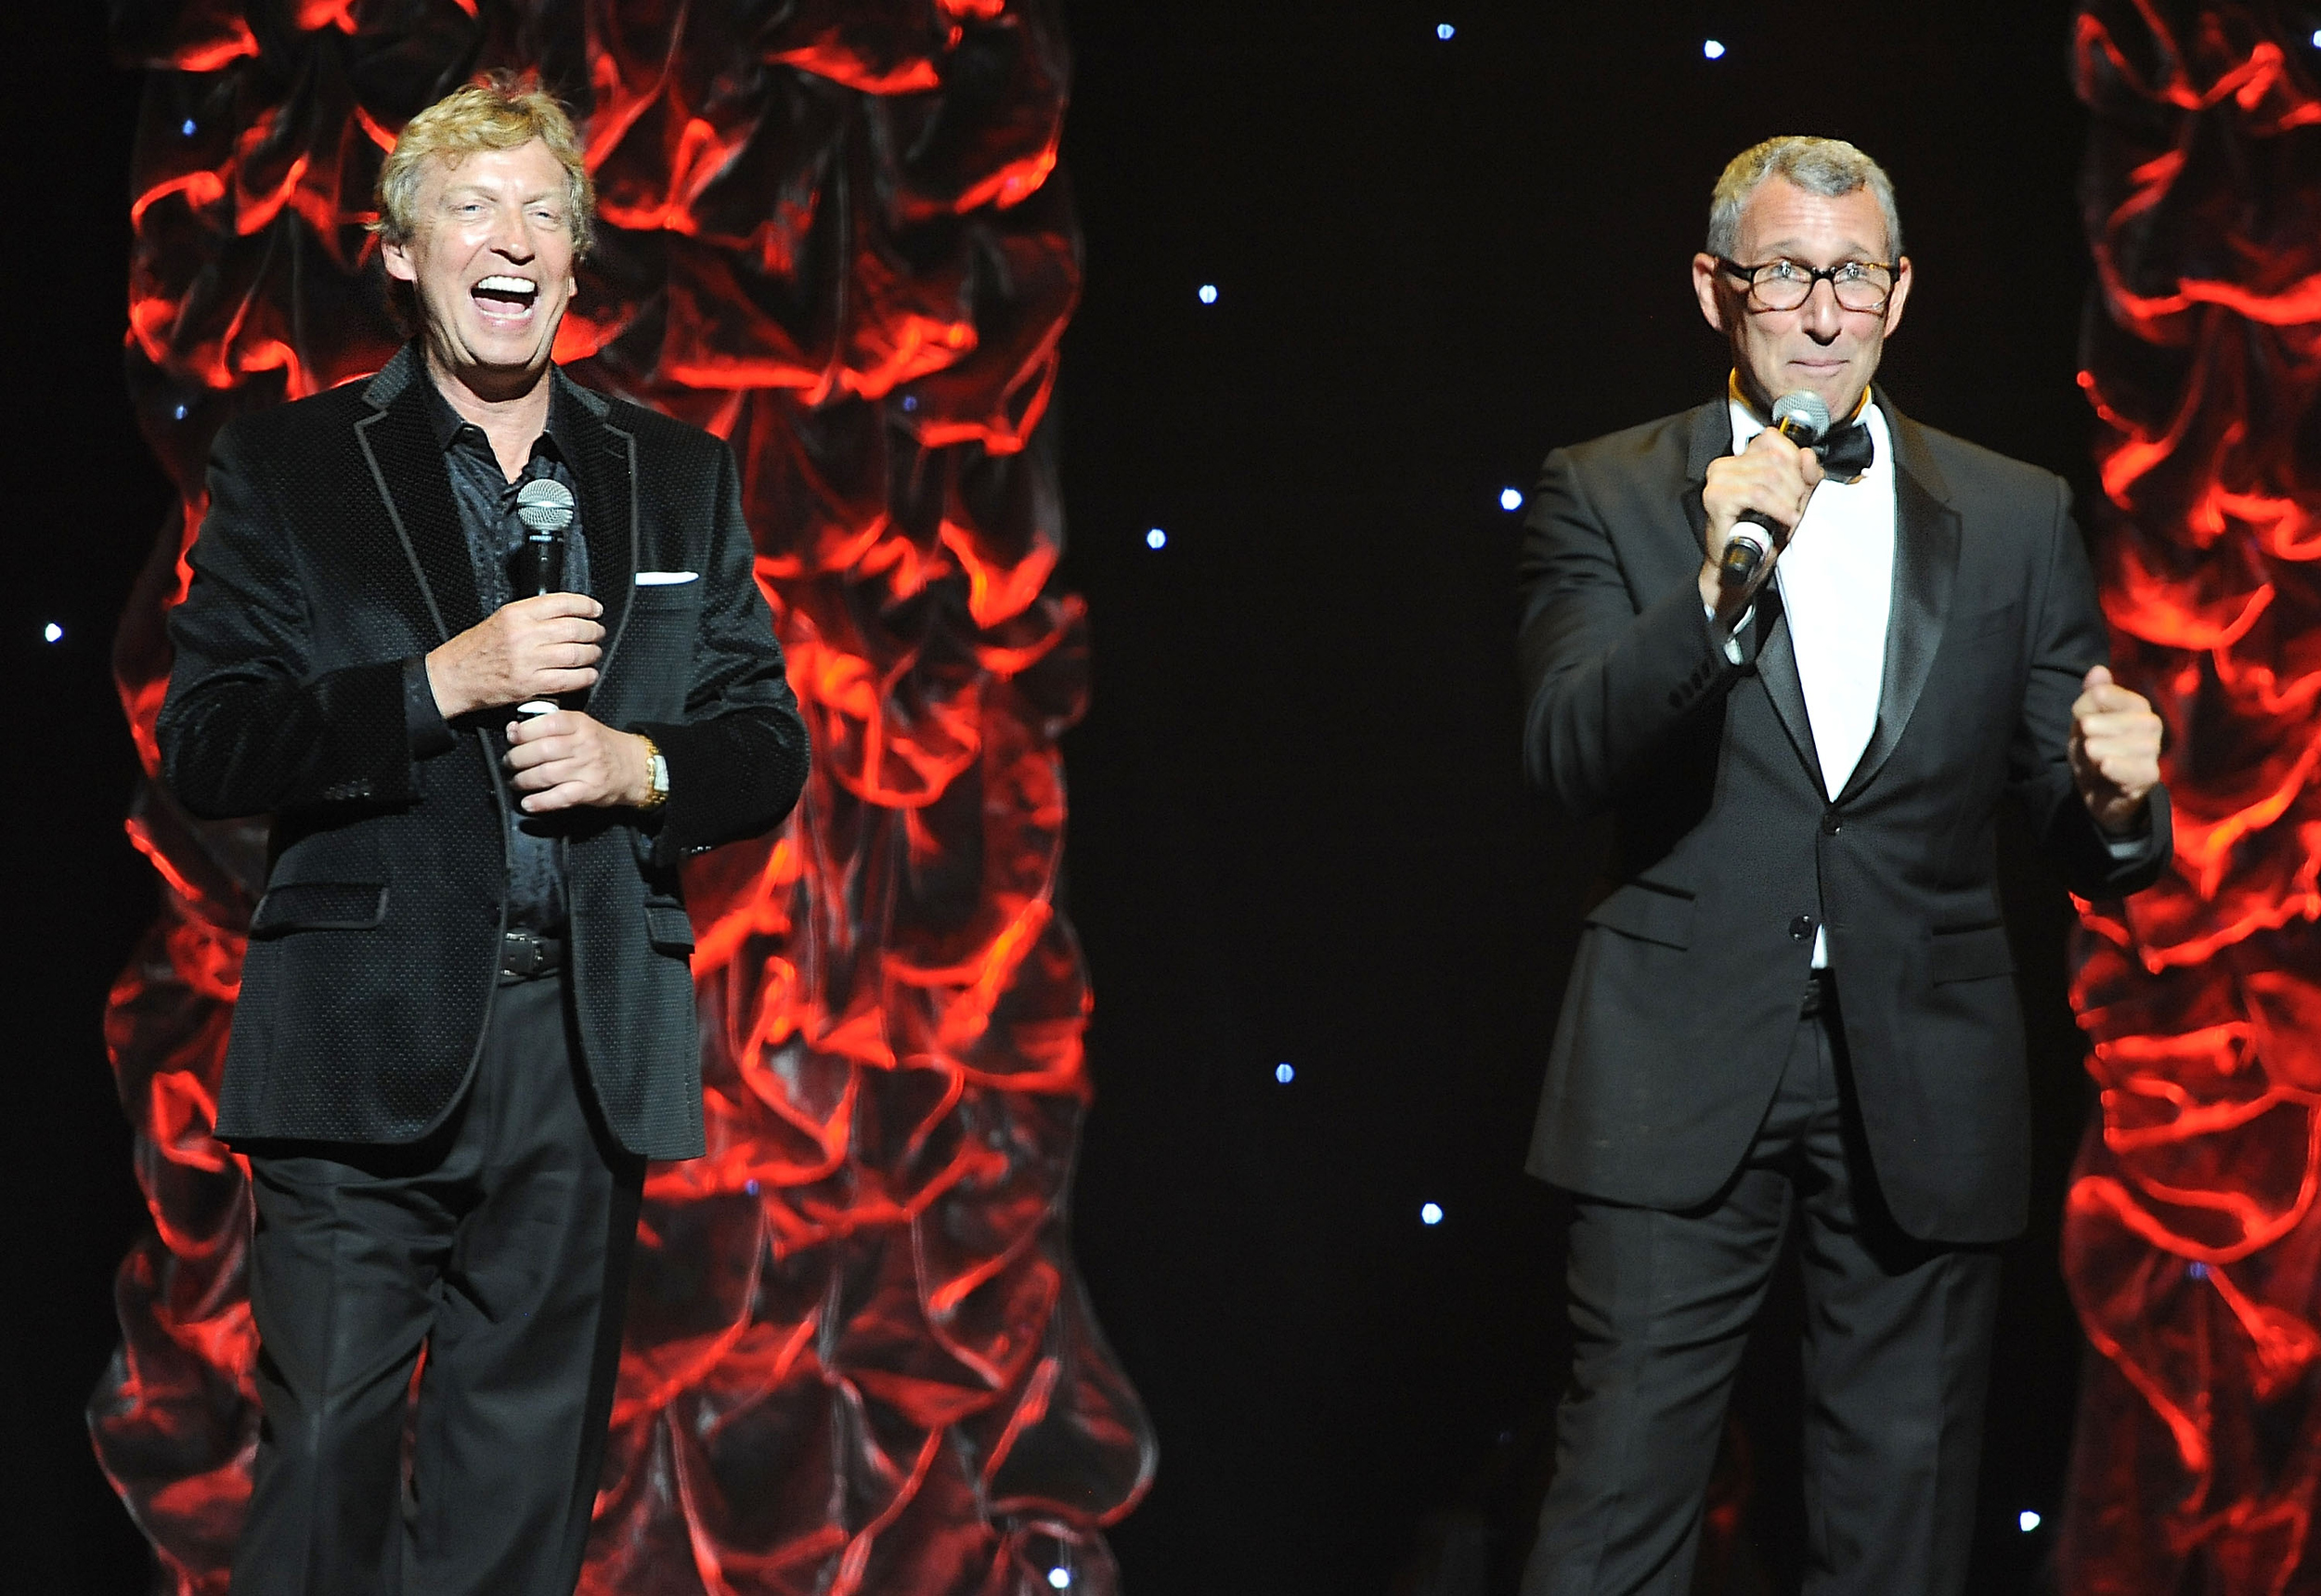 Founders of the Dizzy Feet Foundation Nigel Lythgoe and Adam Shankman.